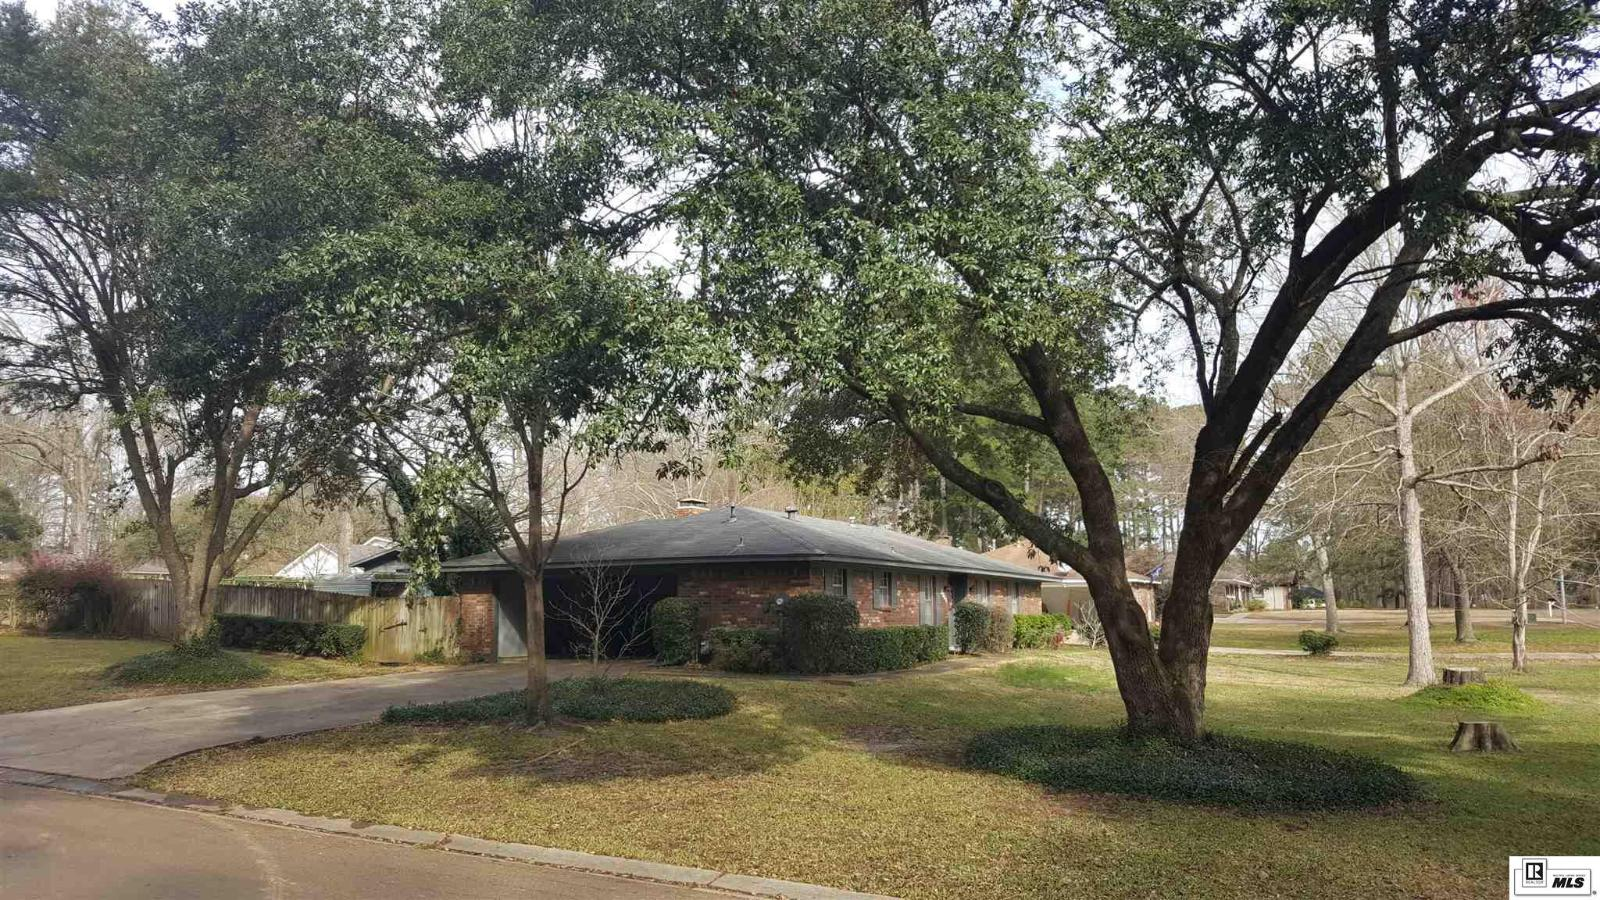 4a14019b1f ... 2301 Lily Drive, Ruston, LA 71270   Image #2 of 29 from carousel ...